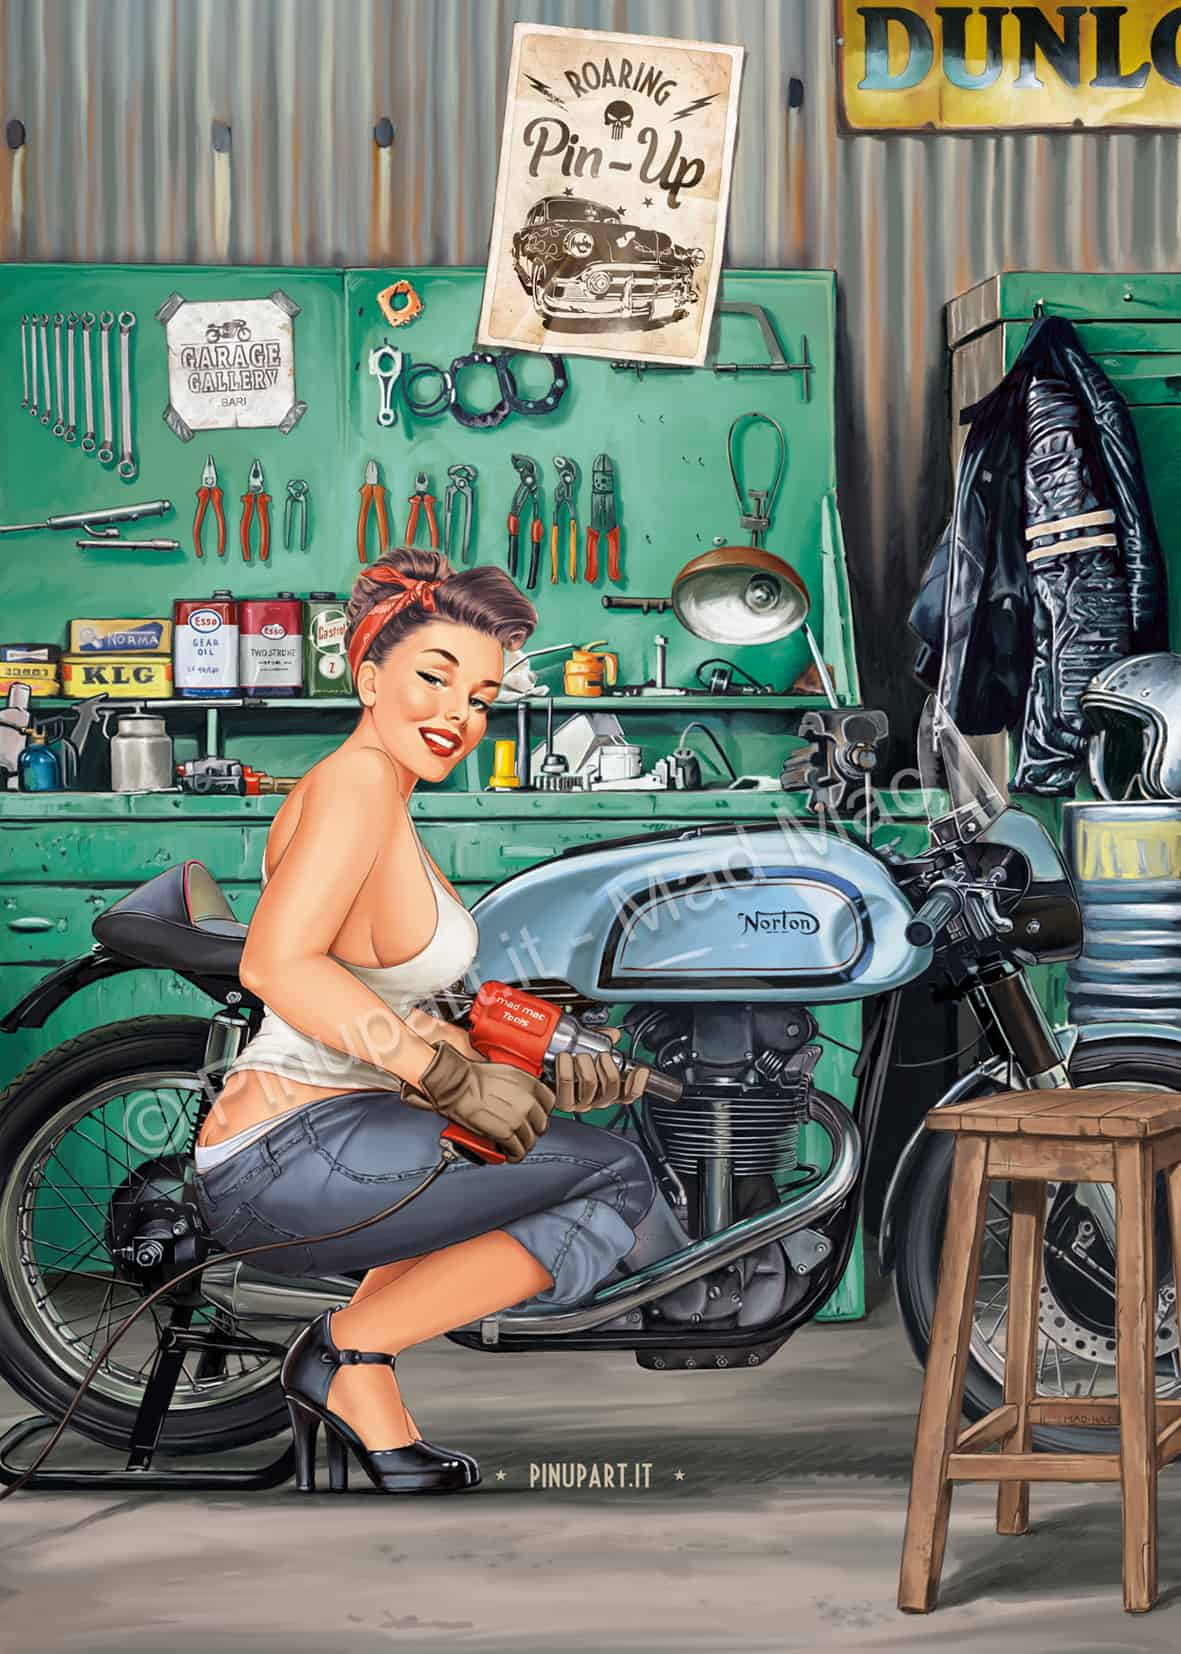 A mechanic pin-up in the garage tuning a 1953 Norton classic cafe racer